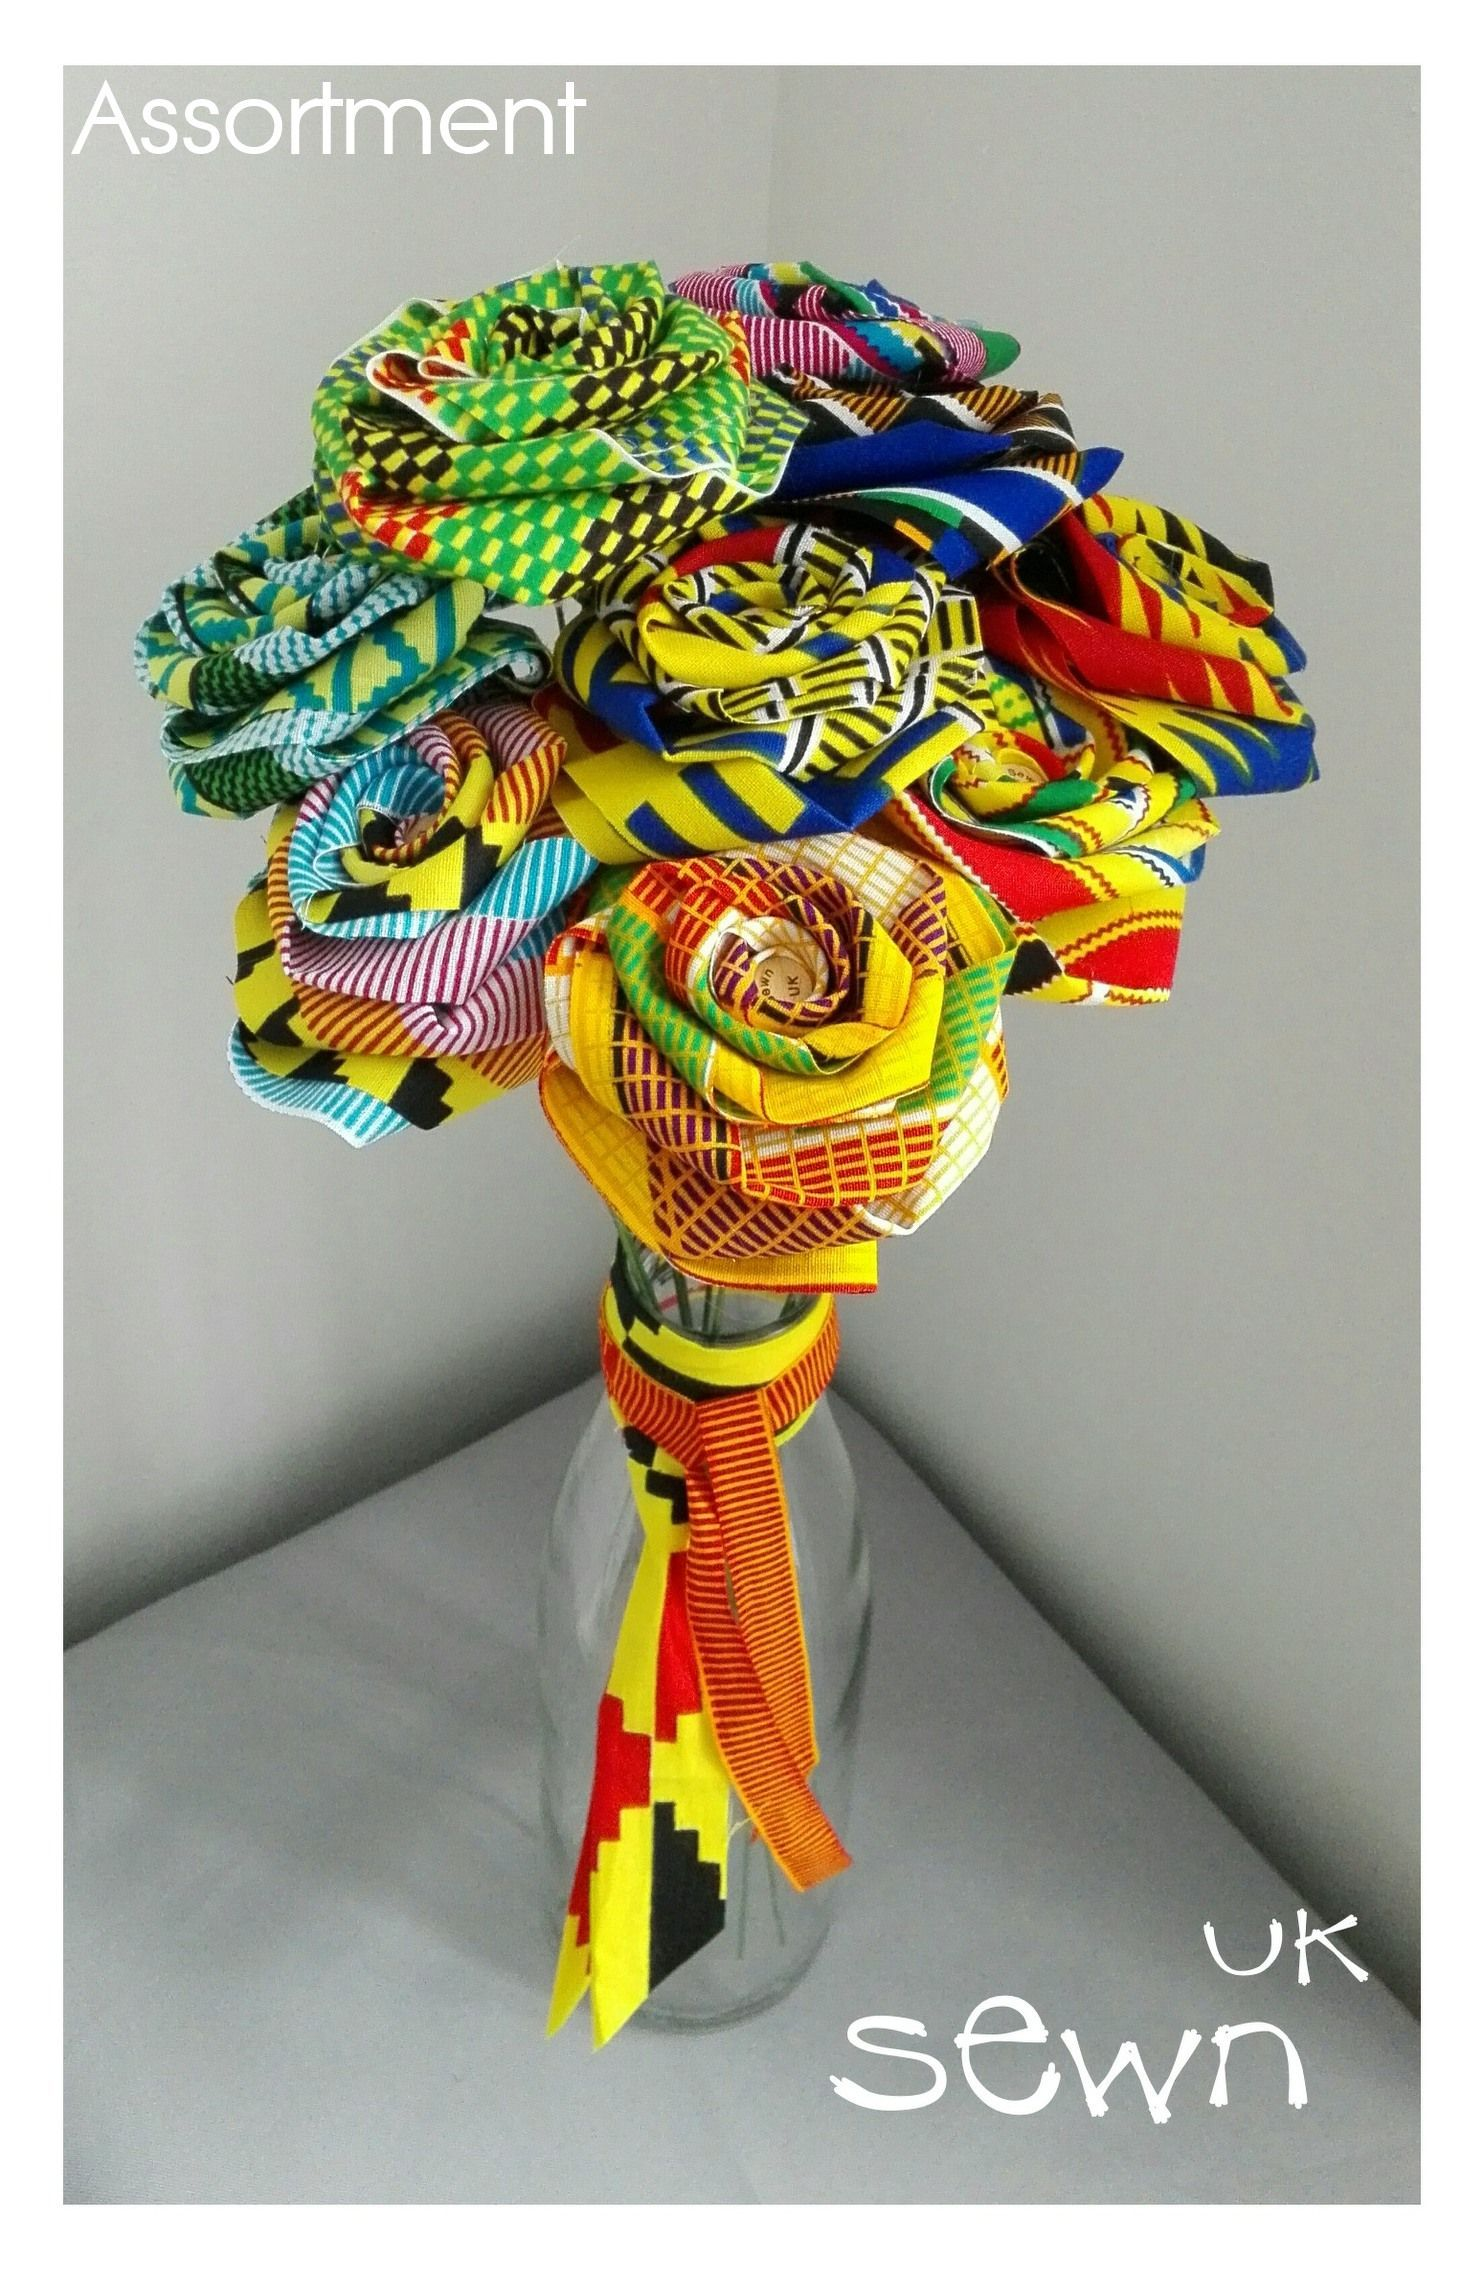 Fabric Roses, Flowers that last! – African Kente Designs with Bendy Stems. Perfect as Gifts, Table Centrepieces or simply for the home